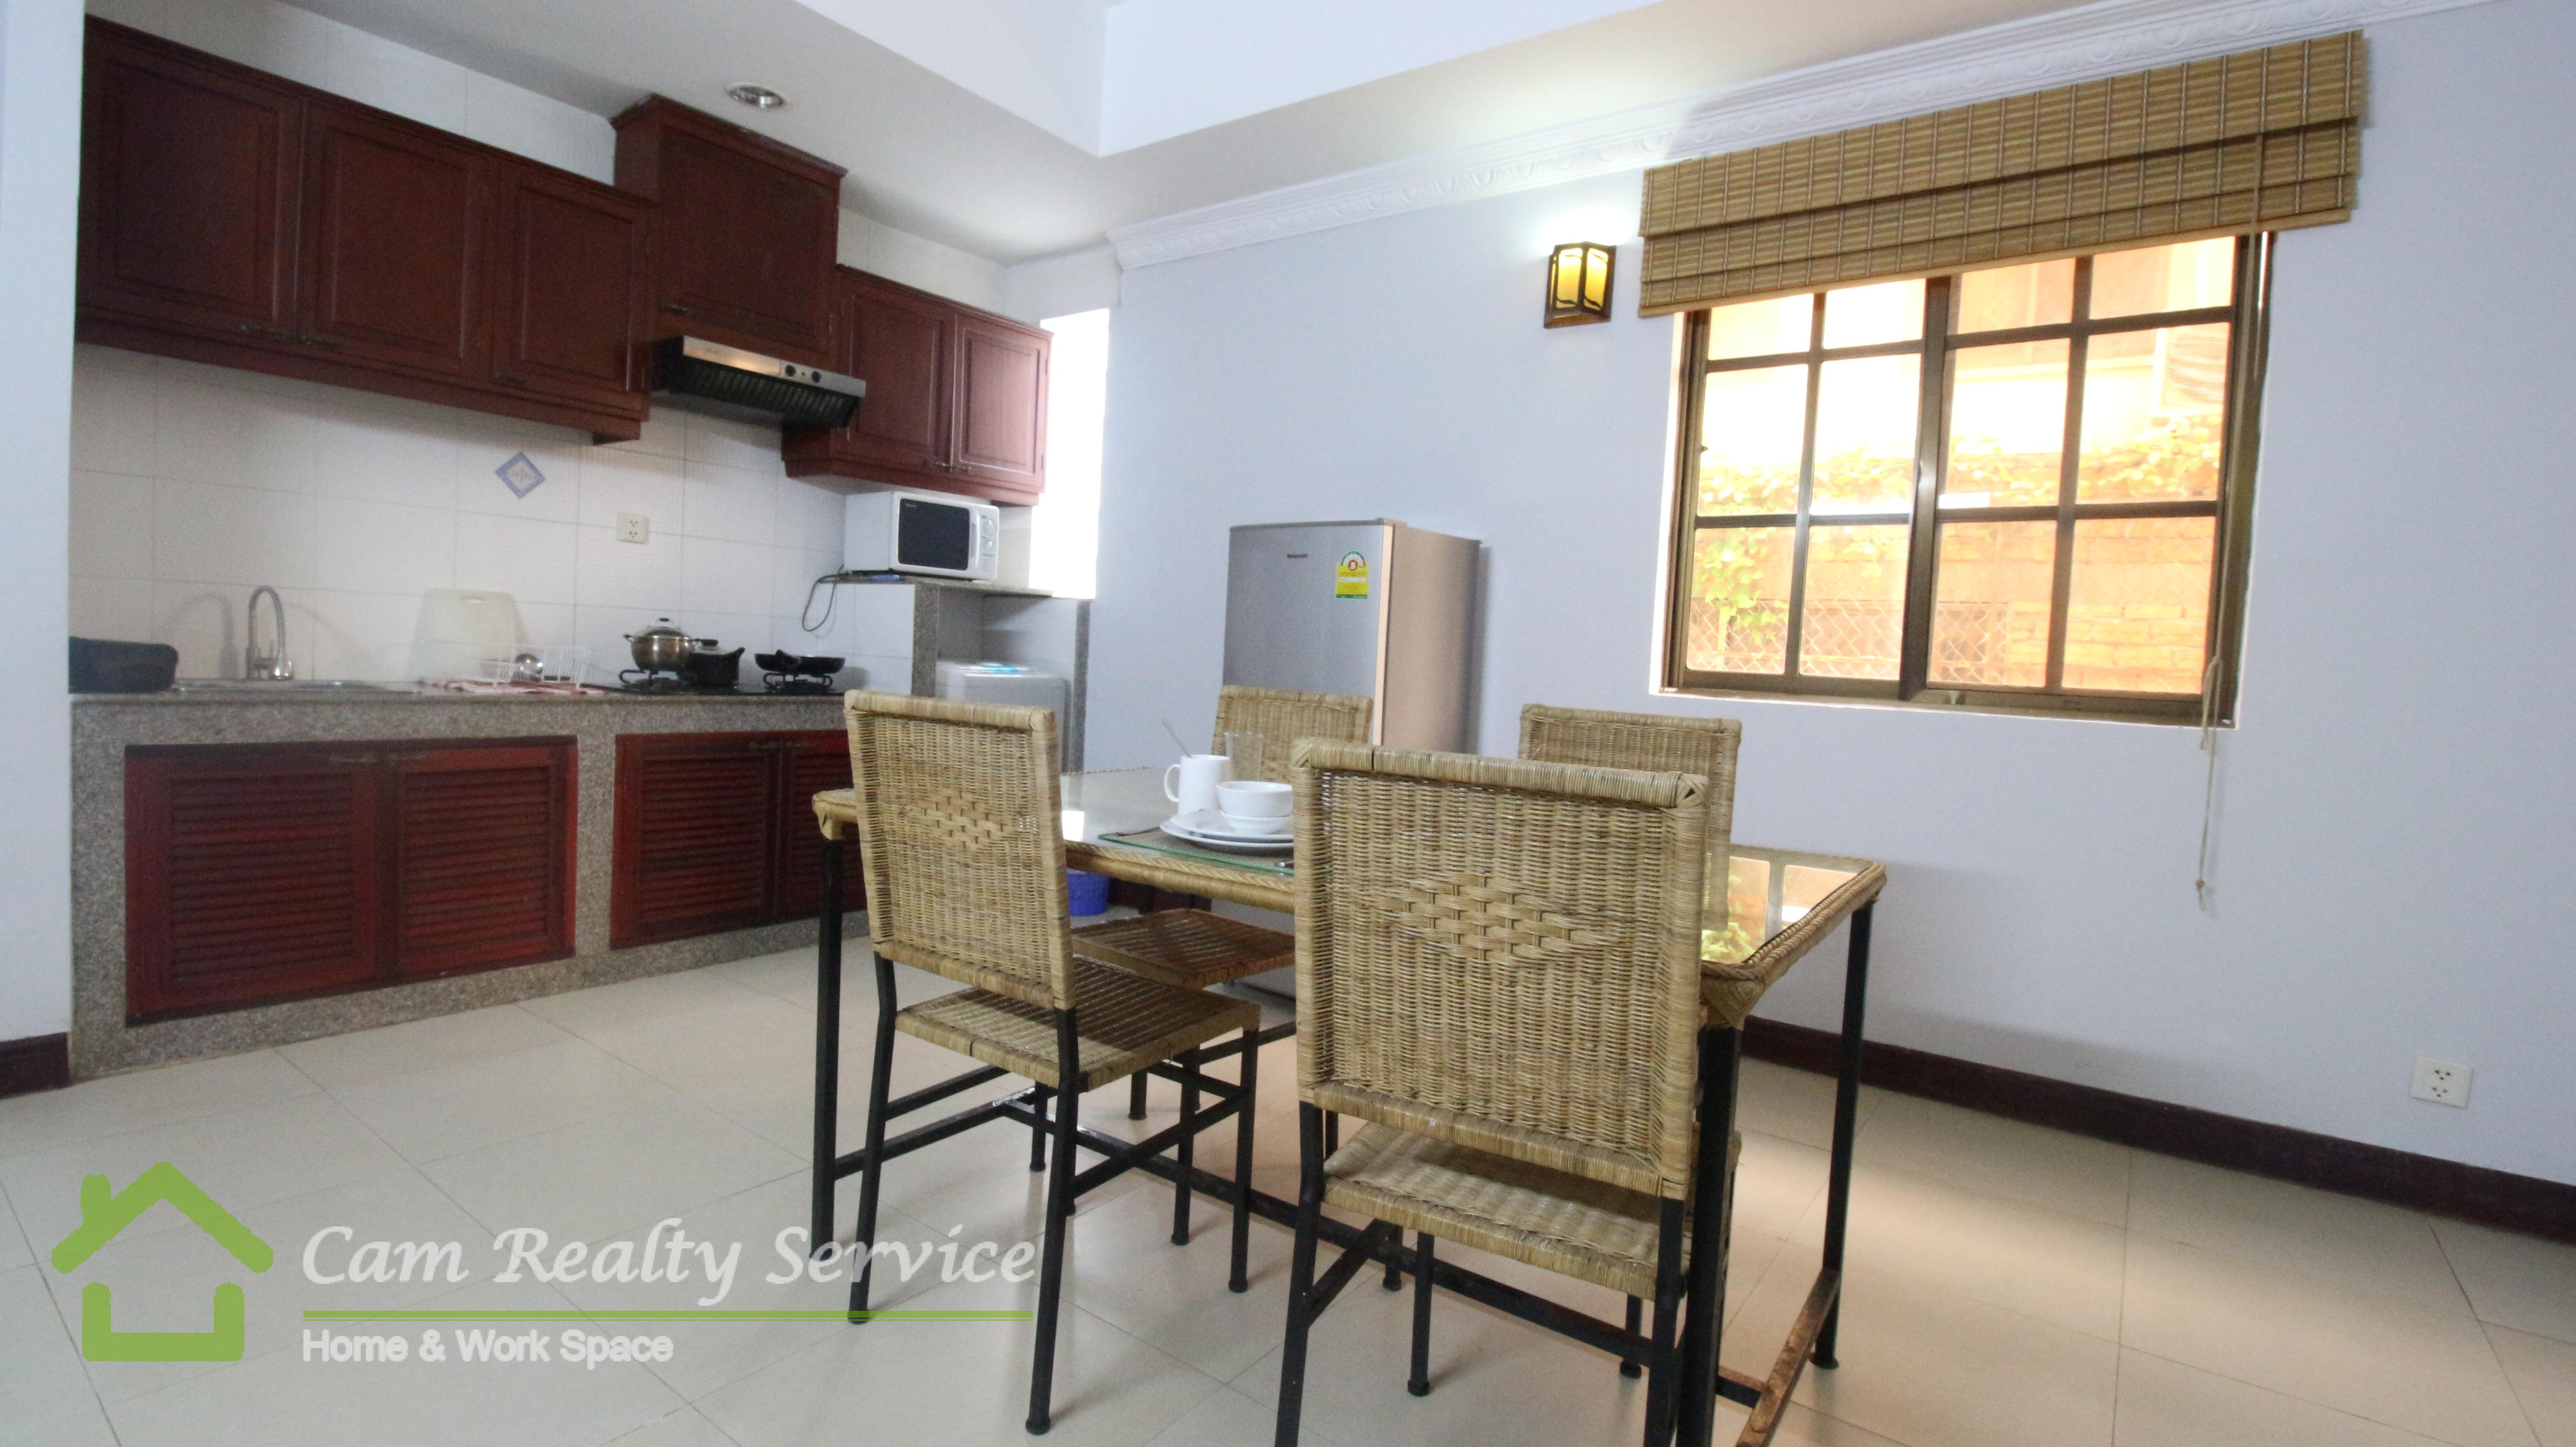 Wat Phnom Area  Modern style 1 bedroom serviced apartment available for rent 500$ up/month car parking 